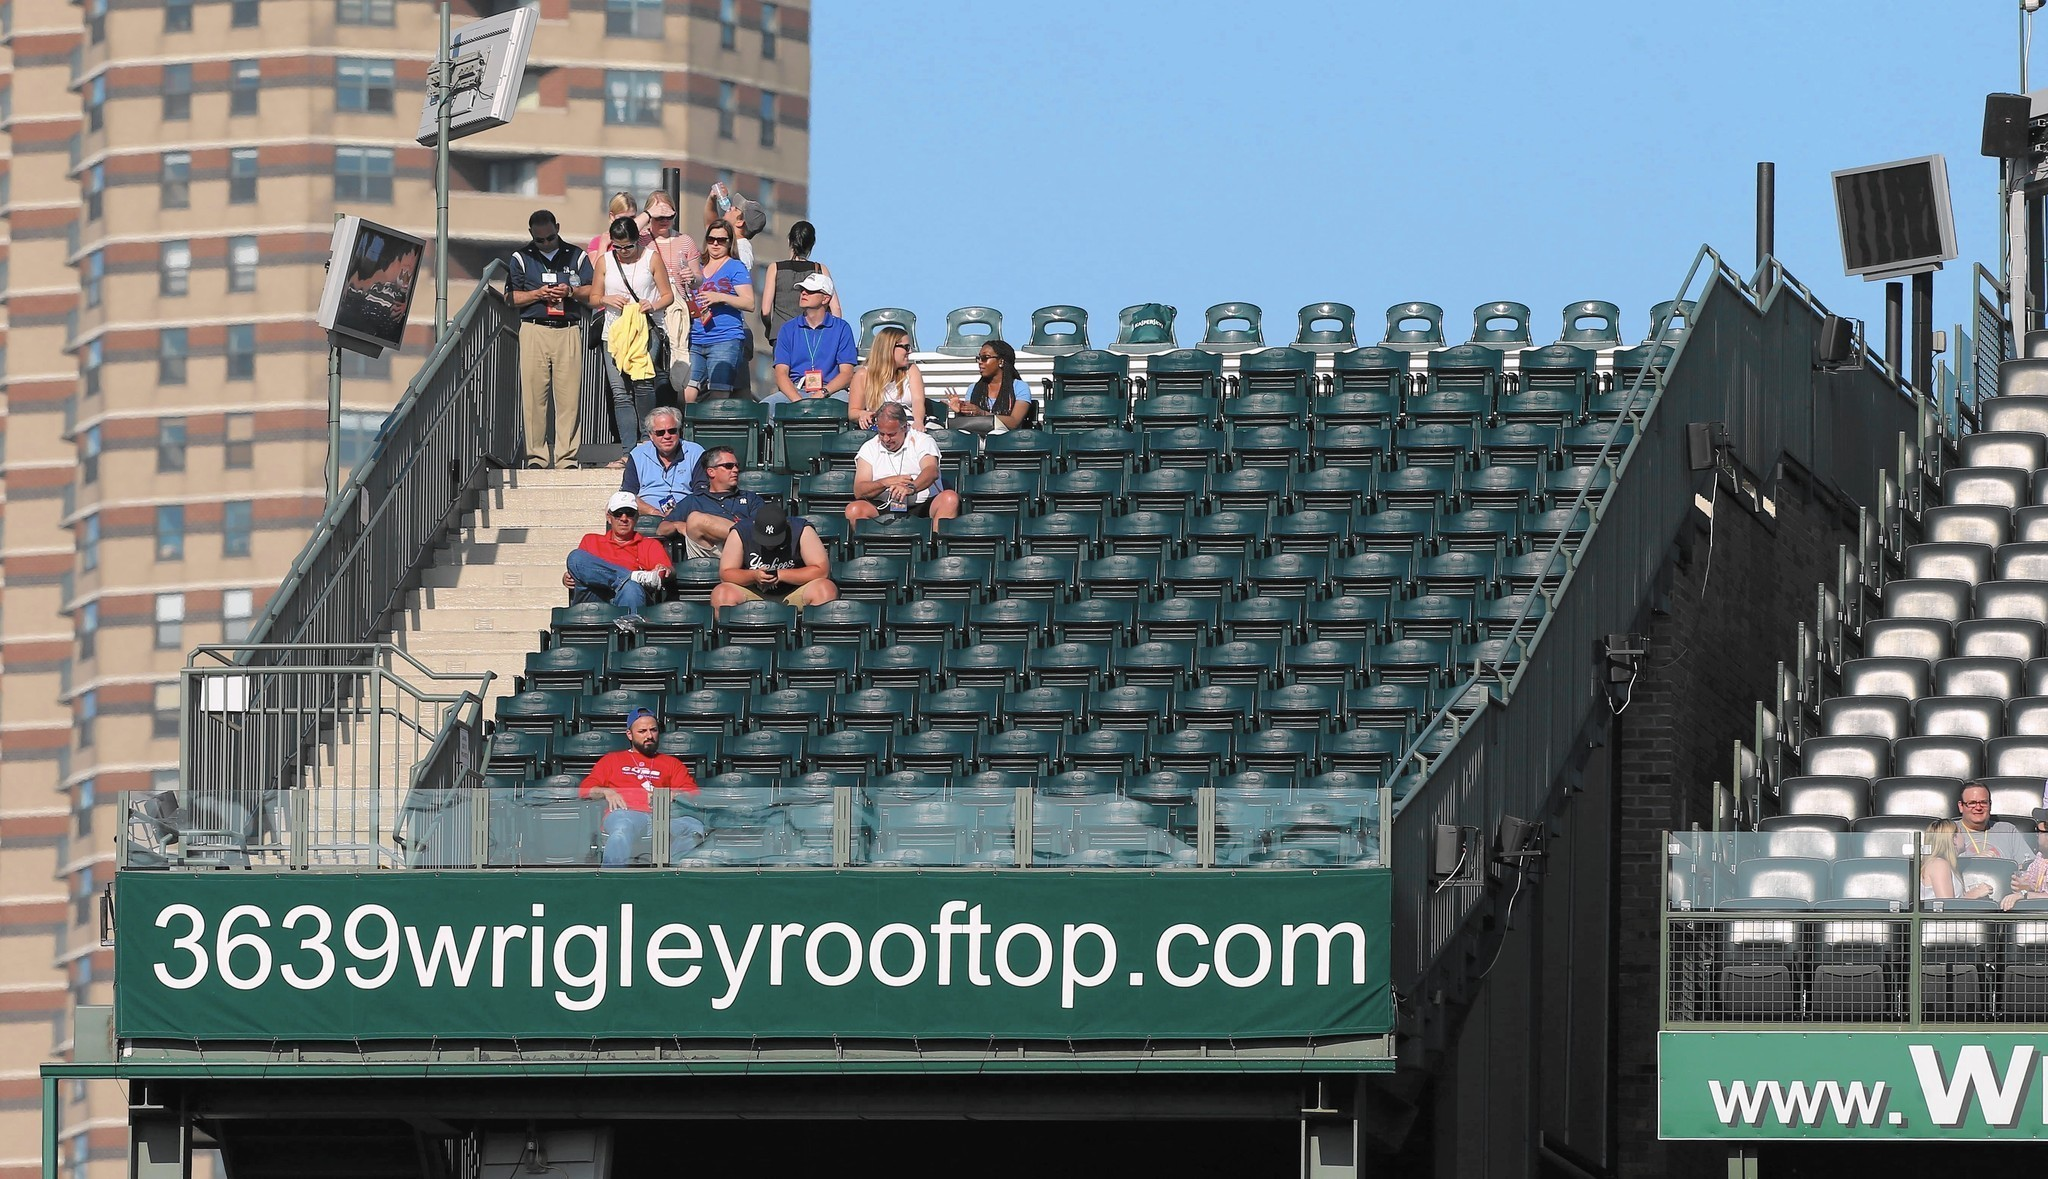 Wrigley rooftop owners go to court to block signs' installation ...